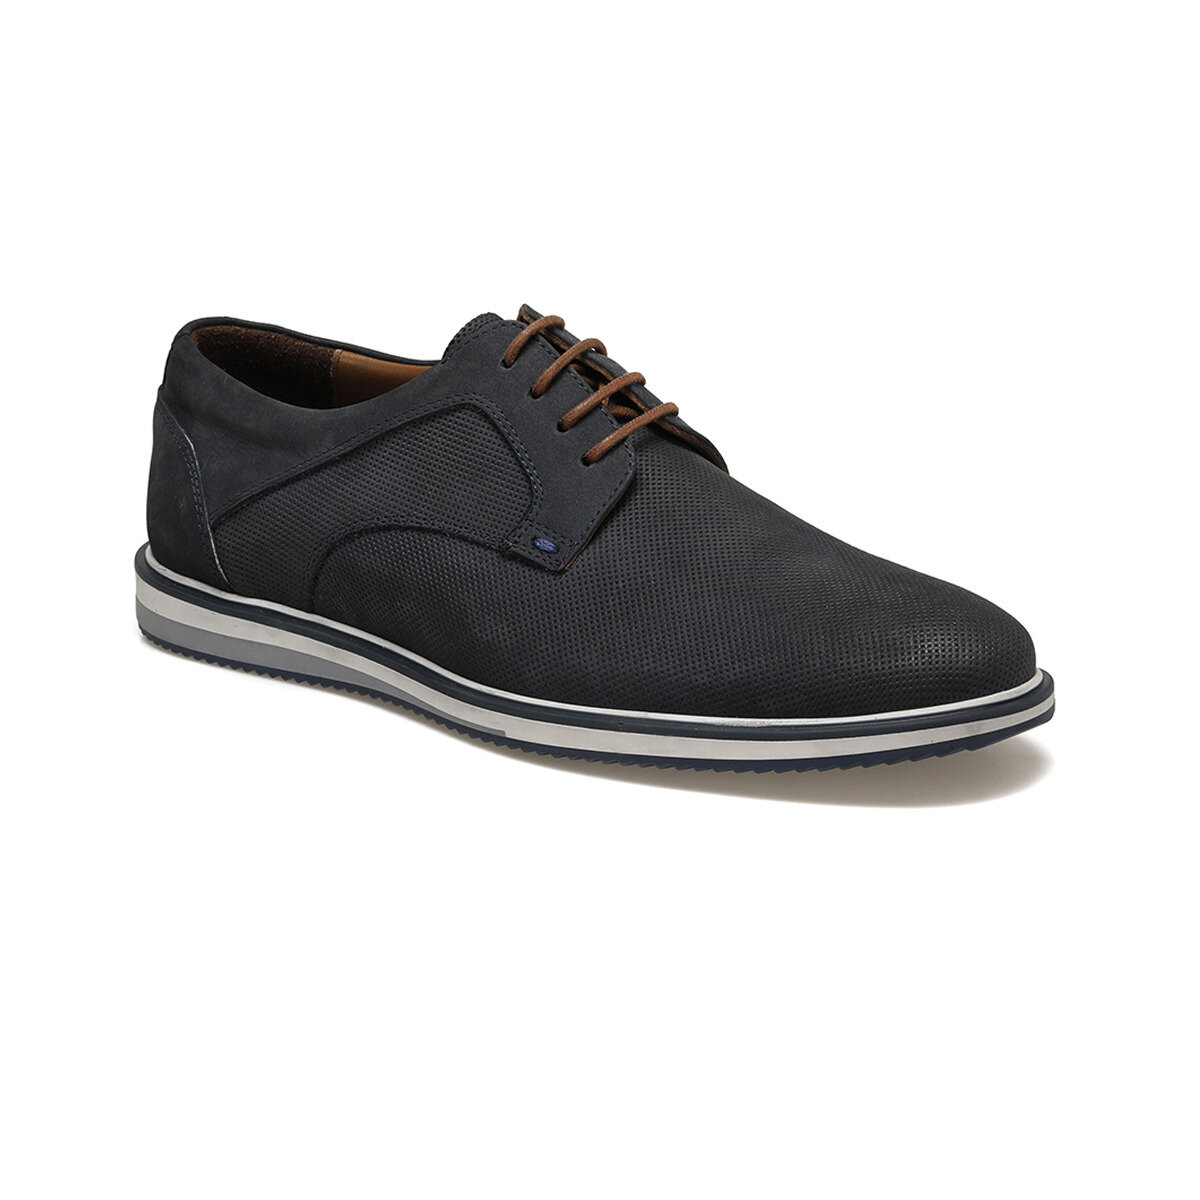 FLO 4263 Navy Blue Men 'S Shoes Garamond